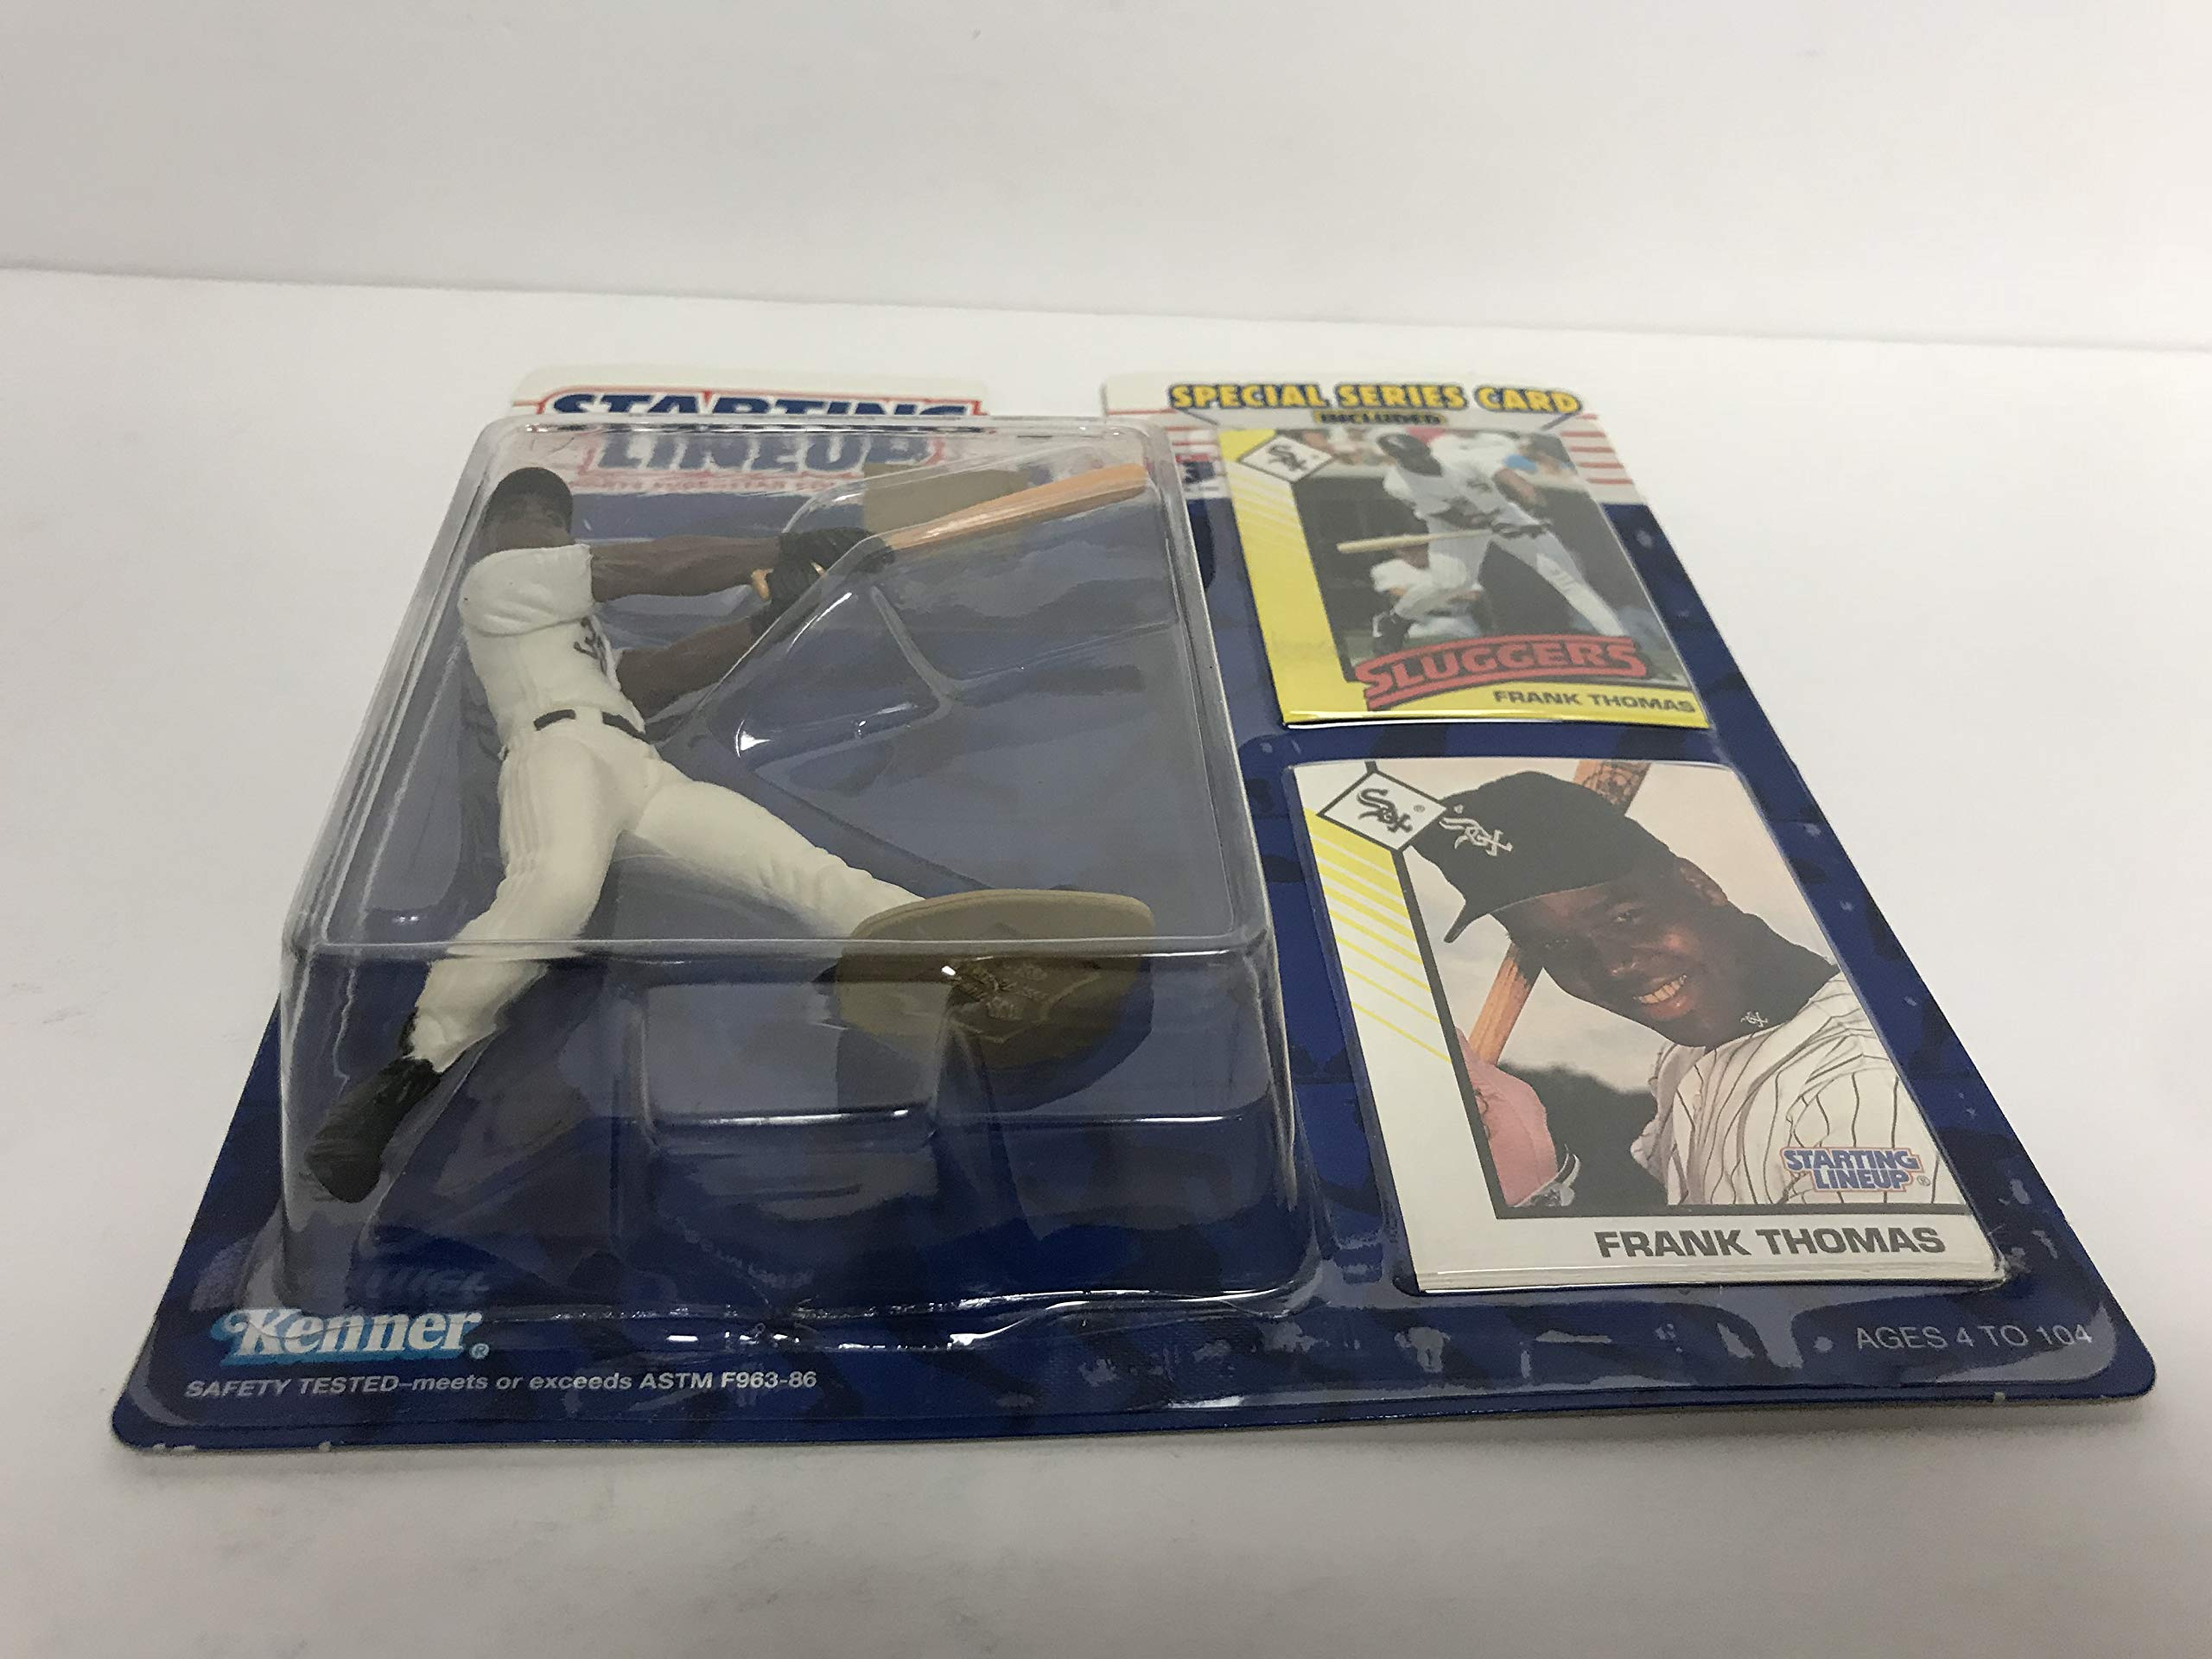 1993 Frank Thomas Chicago White Sox MLB Baseball Action Figure with Collectible Trading Cards